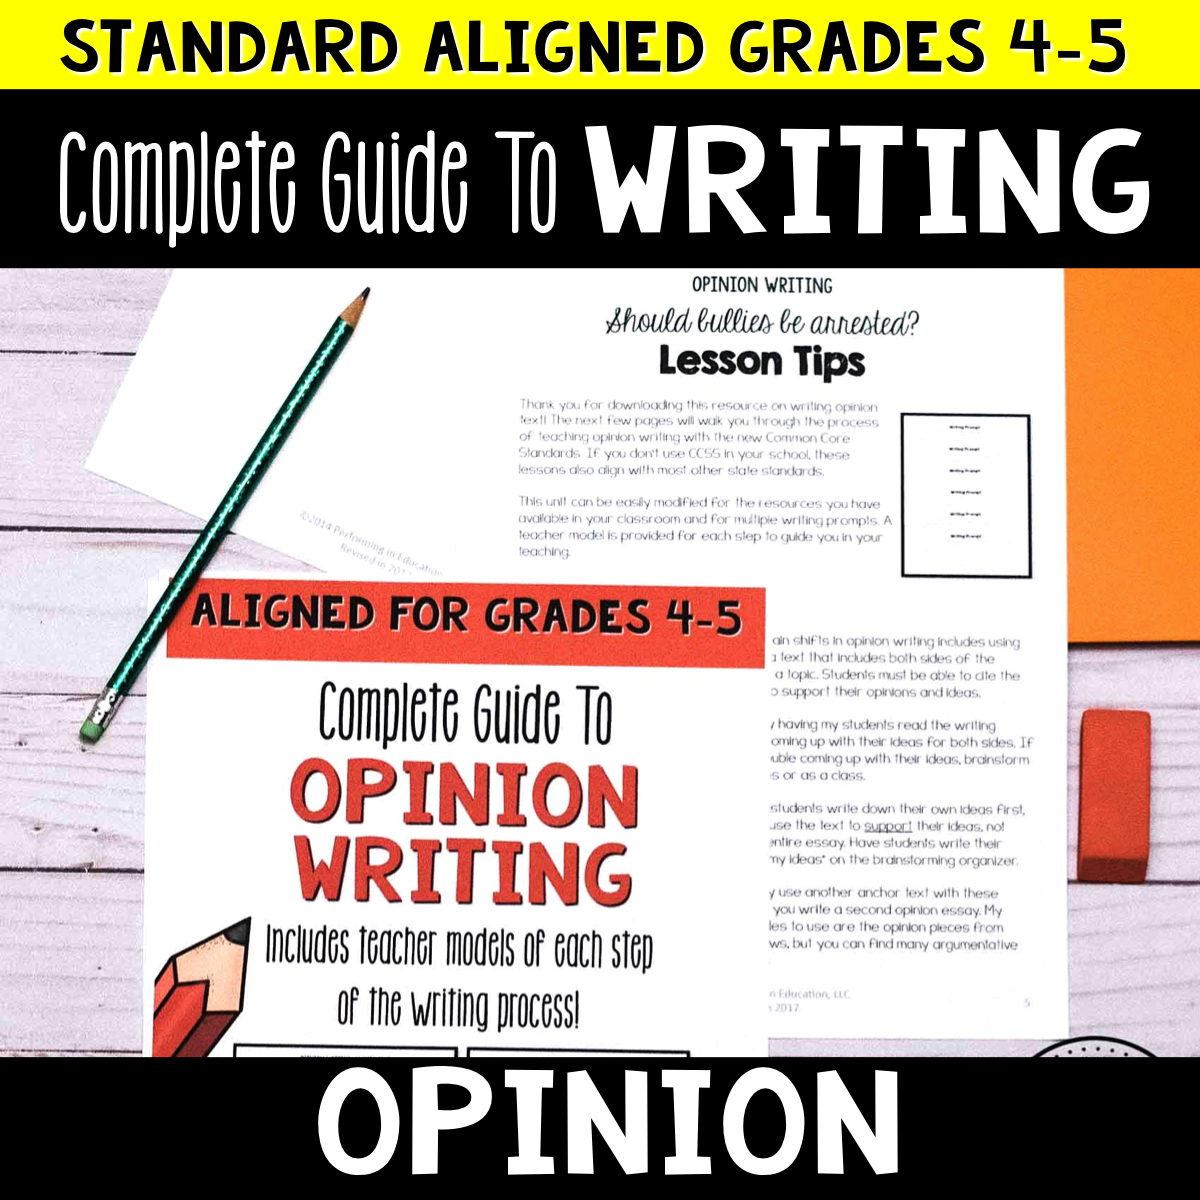 Complete Guide to Teaching Opinion Writing Grades 4-5 00005